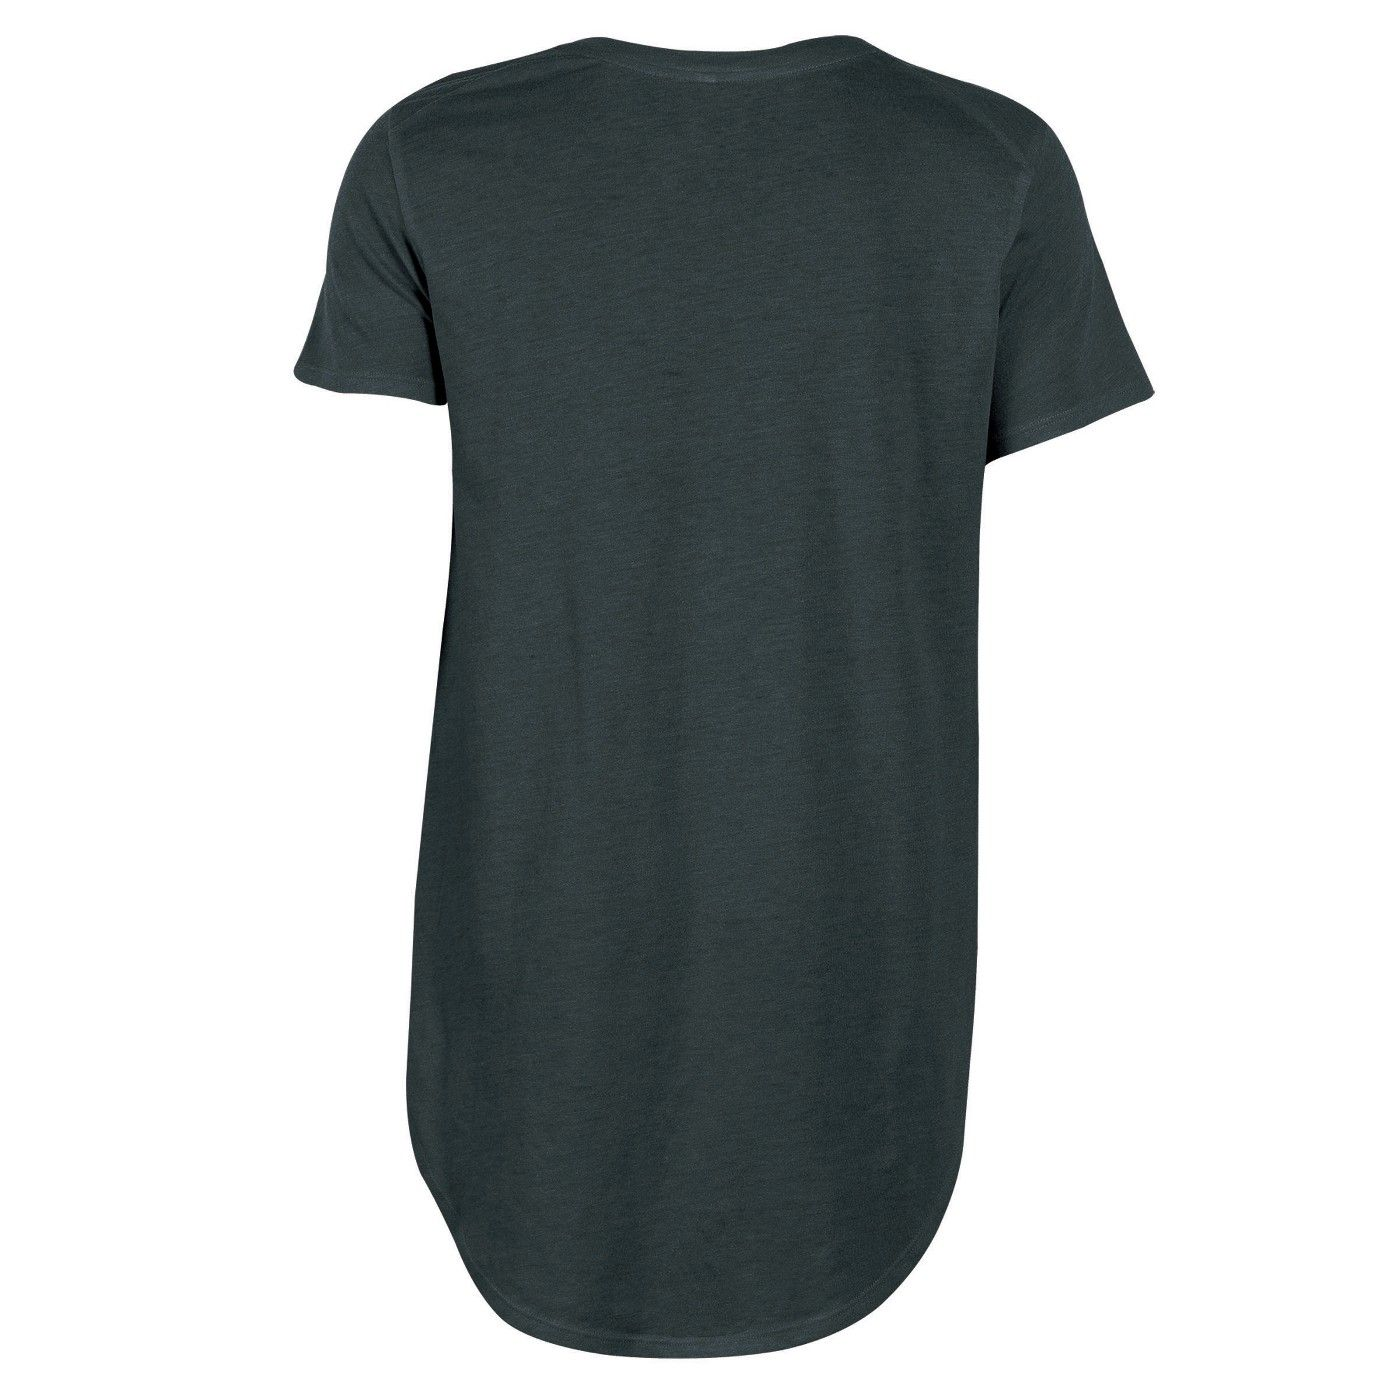 Size Small Affordable yoga clothes, Activewear fashion